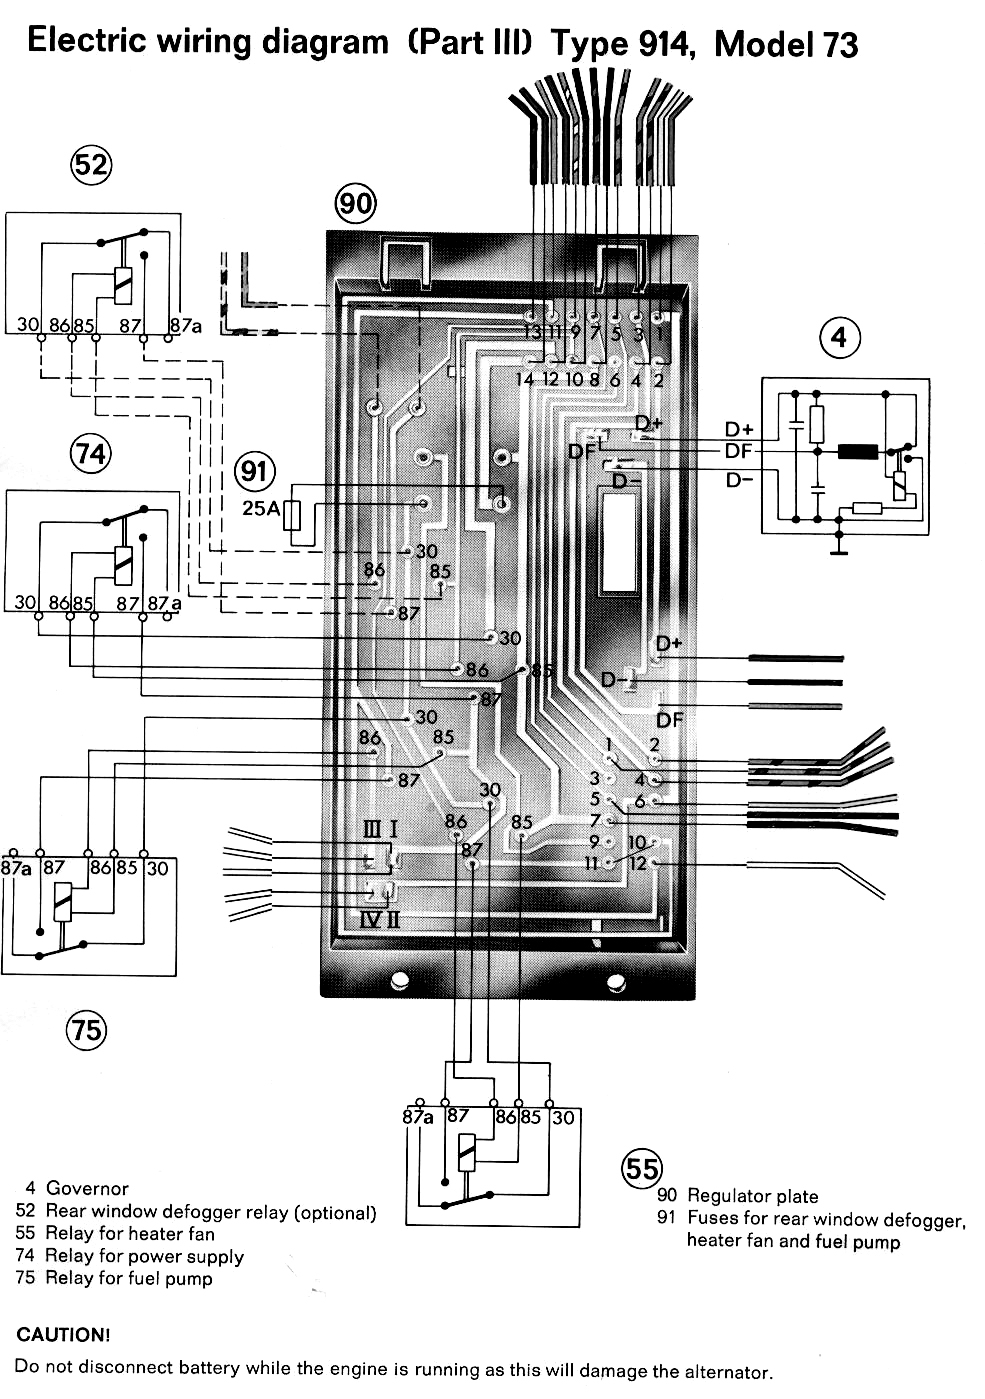 356 porsche wiring diagram get free image about wiring diagram